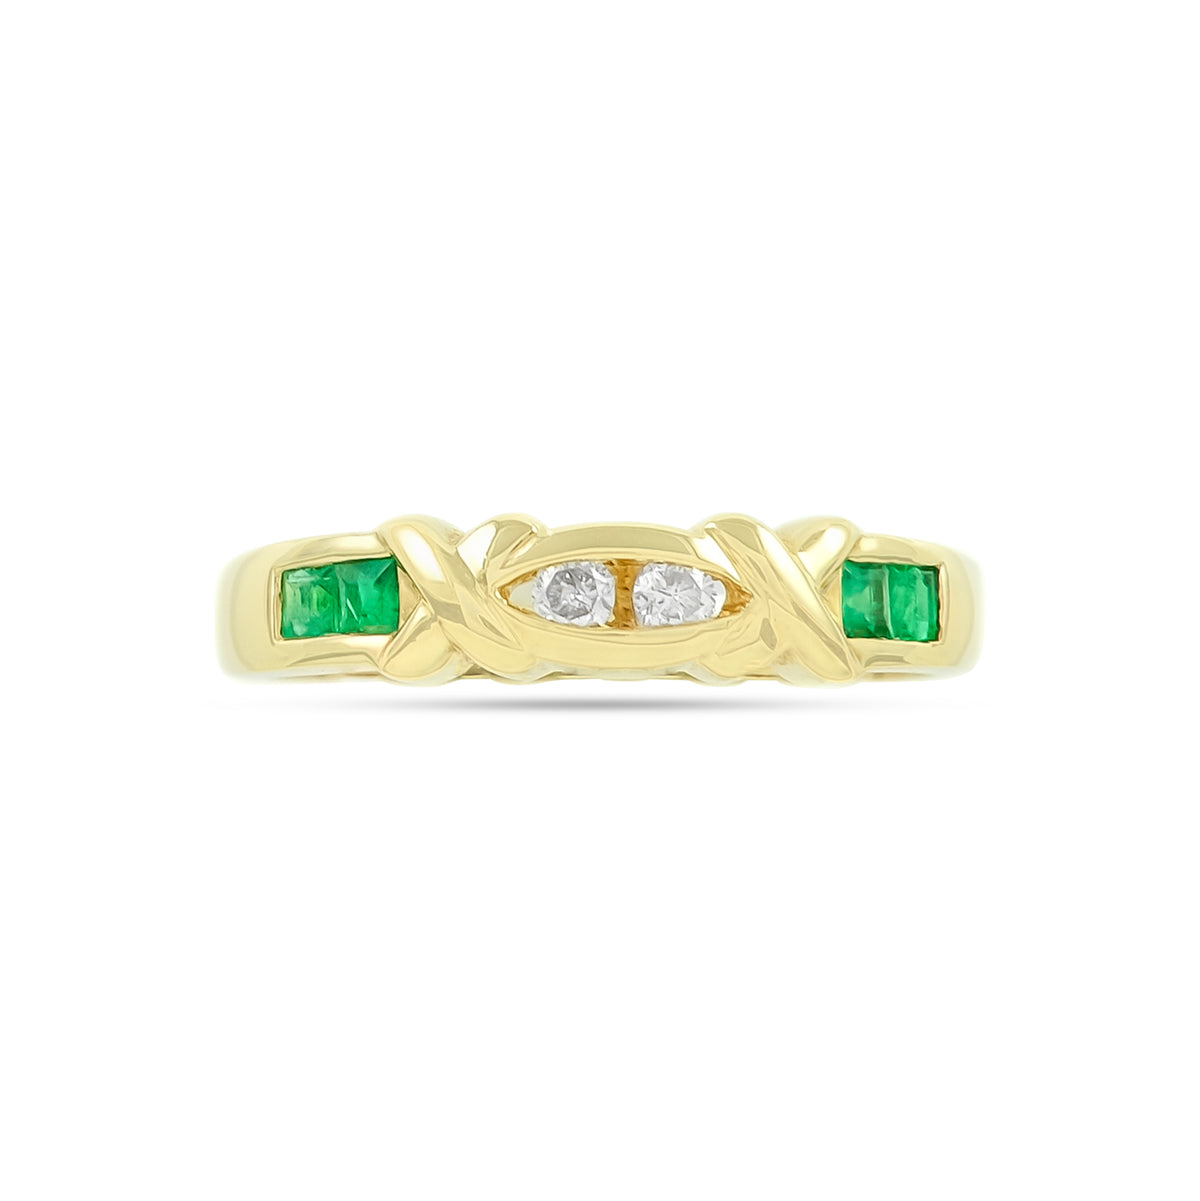 Vintage 18ct Yellow Gold Emerald and Diamond Ring